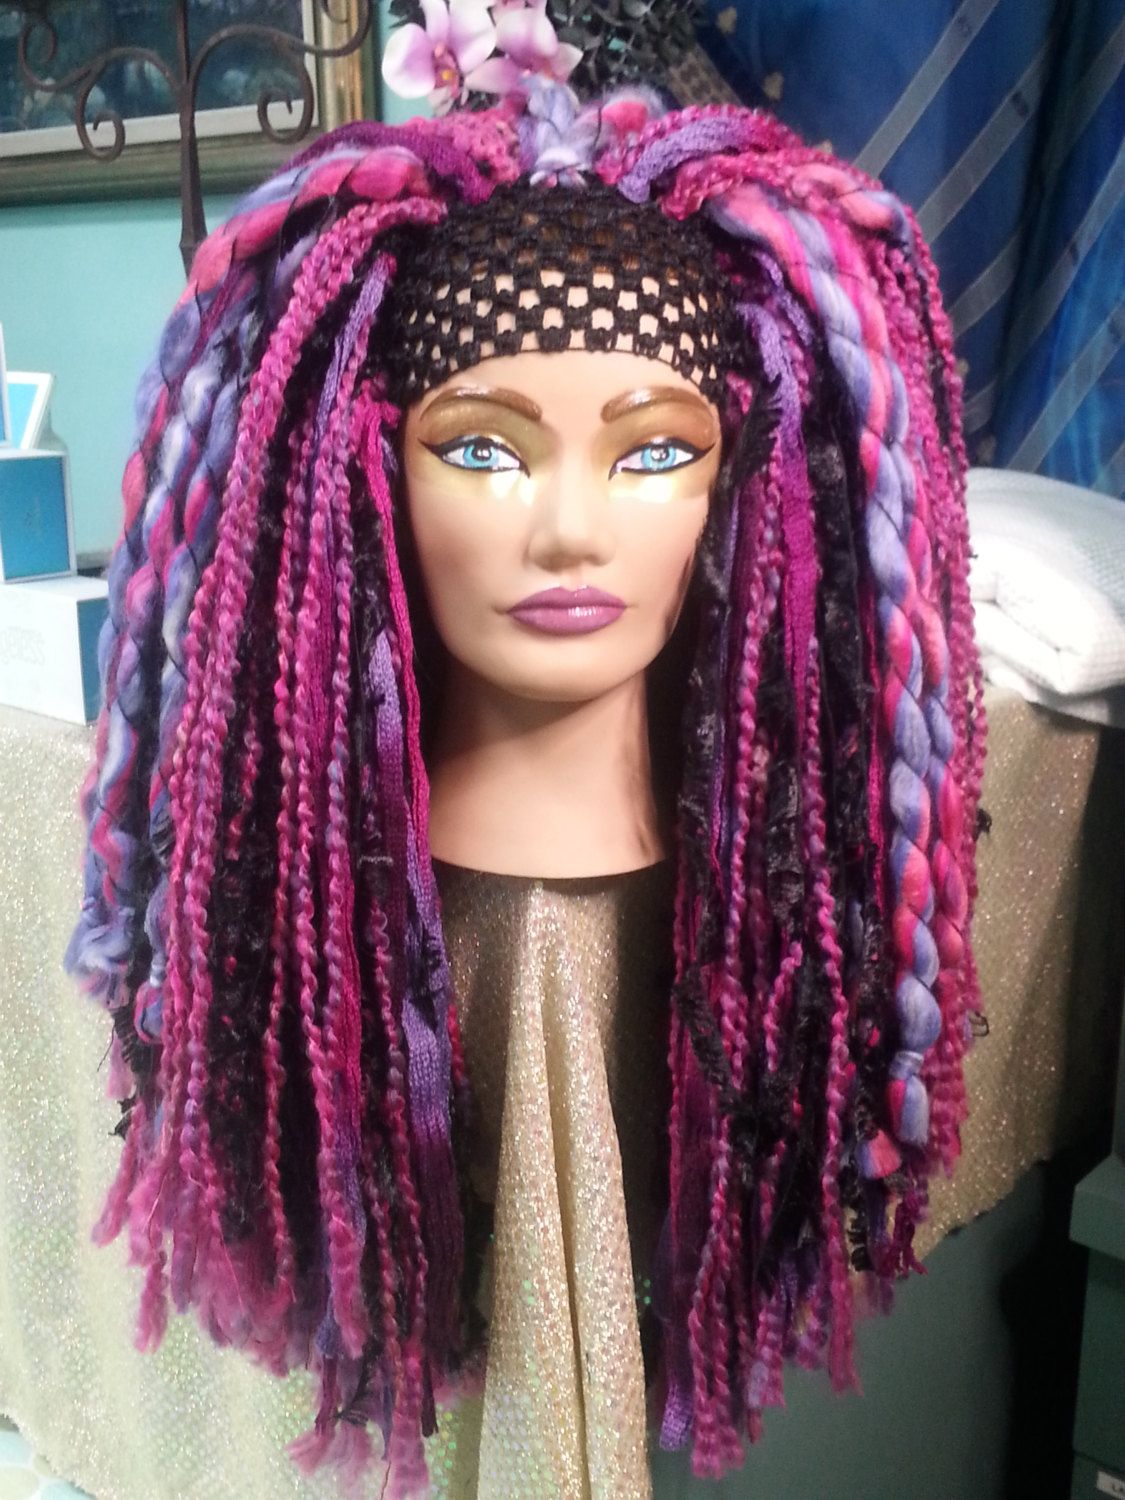 Super Fluffy Pink   Purple Long Thick Yarn Dreadlock Wig Headdress Tribal  Bellydance Cosplay Fairy Burlesque Funky Clown - pinned by pin4etsy.com fbfc1aa07